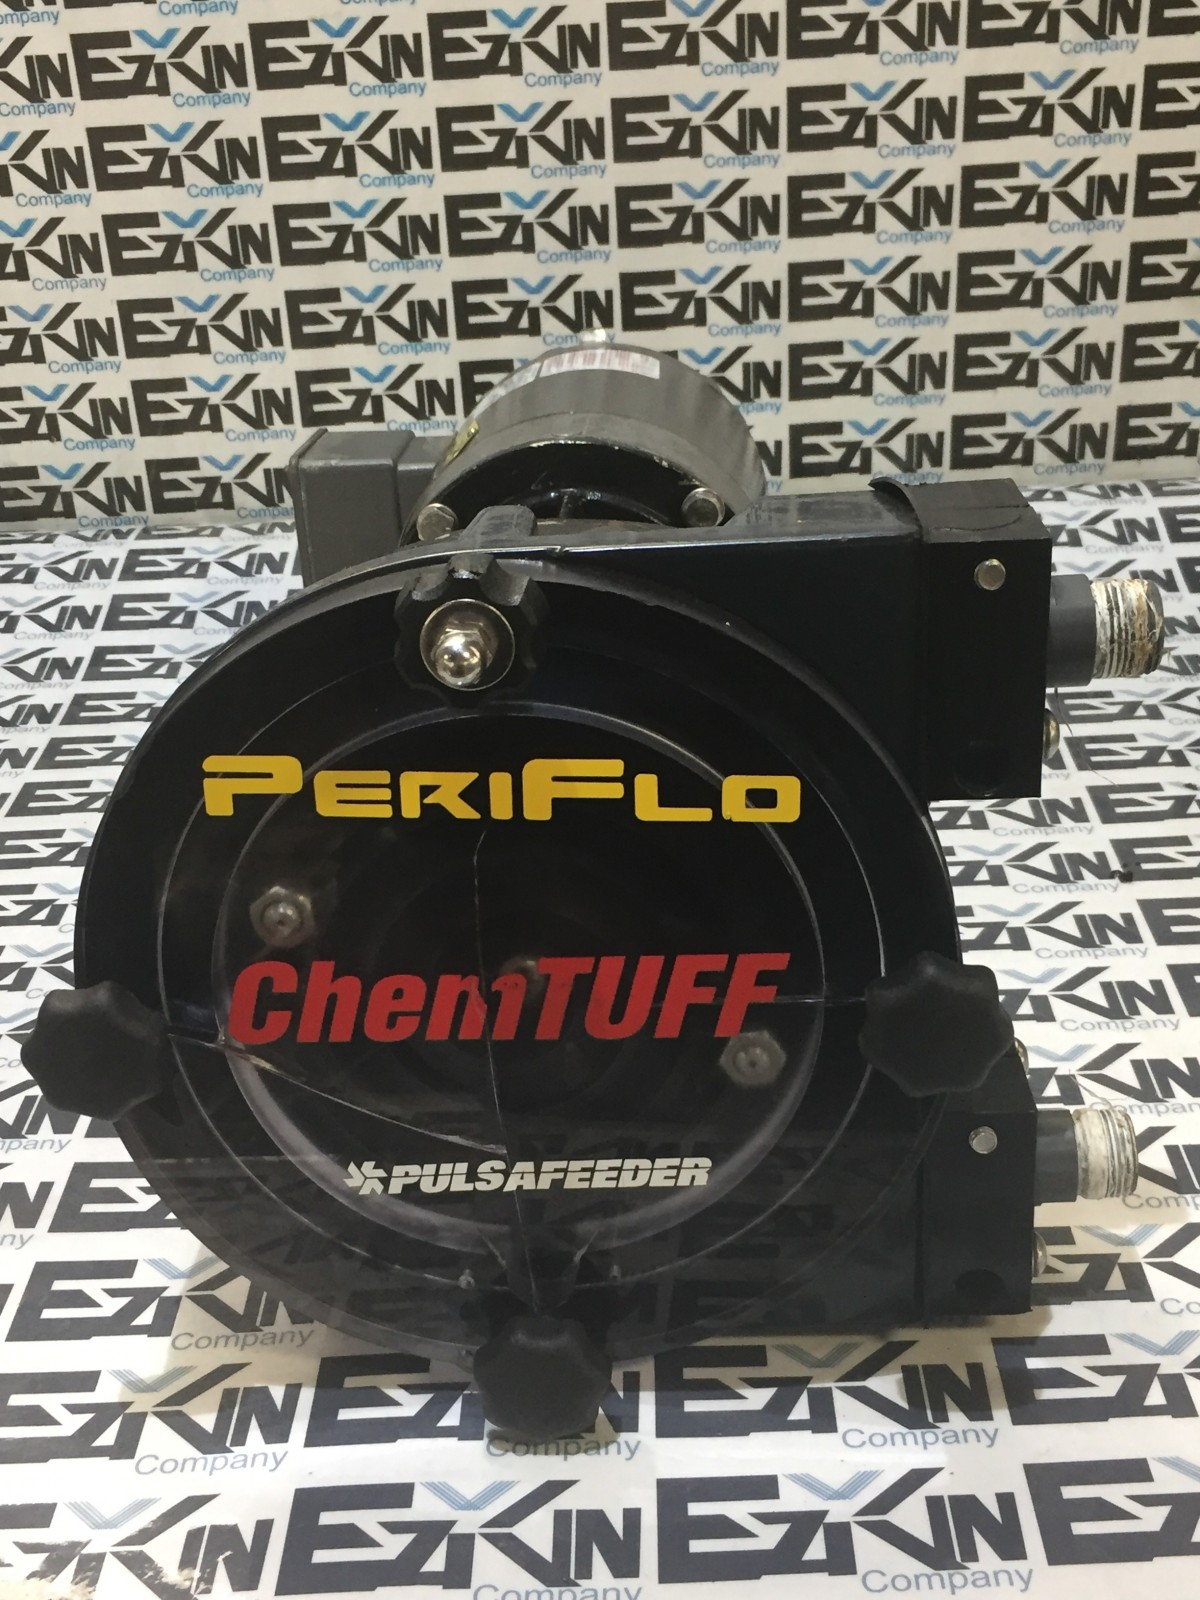 PERIFLO CHEMTUFF 35T995P863G1 MOTOR BROWNING CBN3012ASBSMB3U56CNM GEARBOX